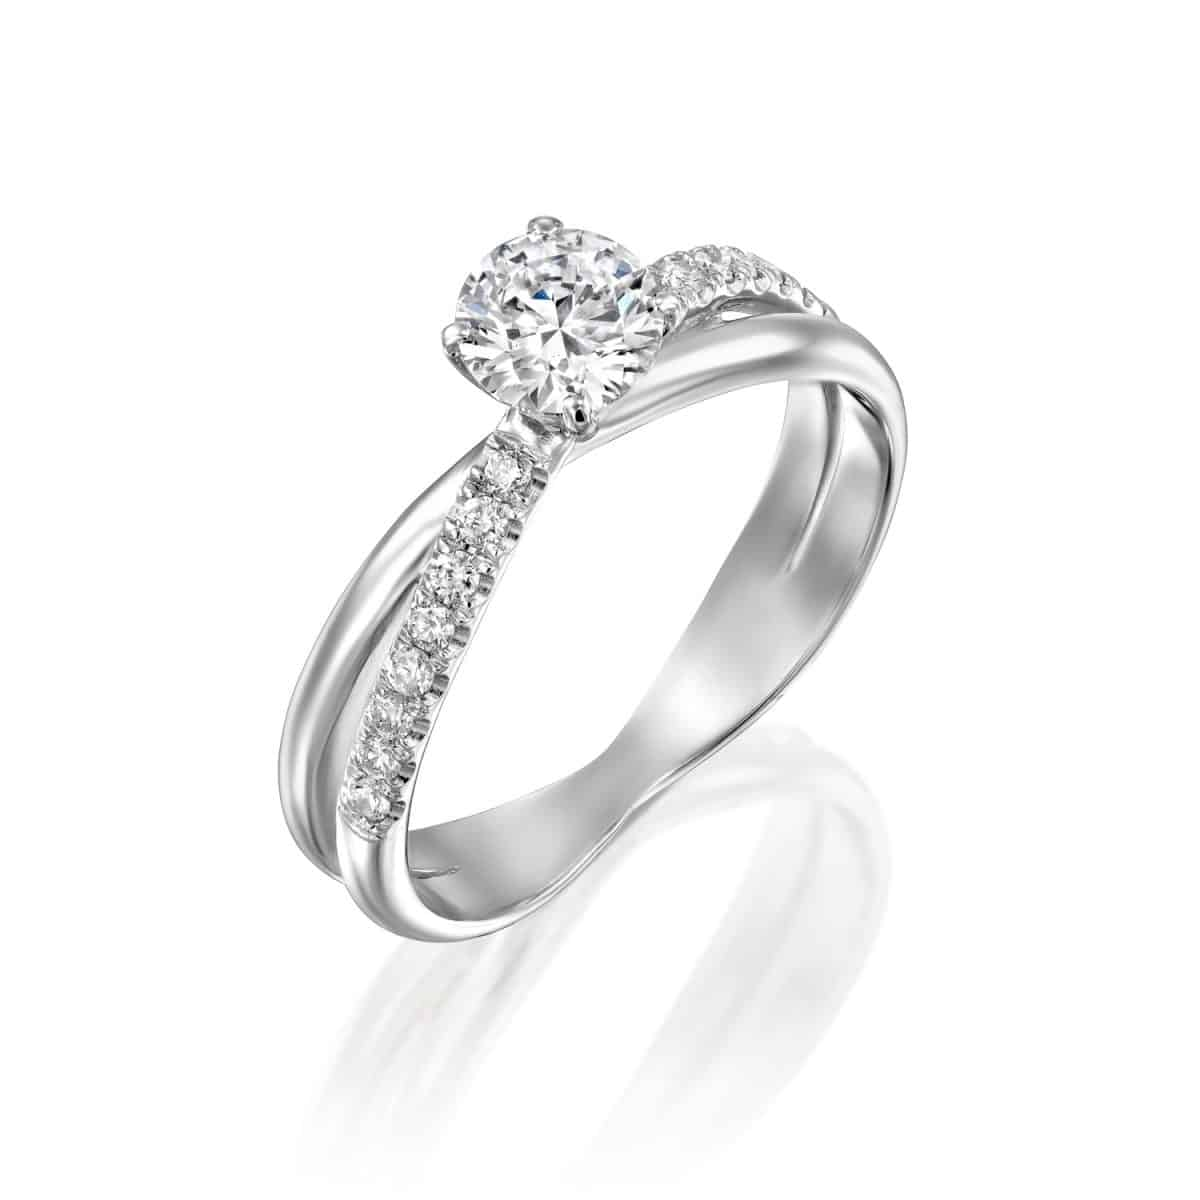 Monique - Twist White Gold Lab Grown Diamond Engagement Ring 0.61ct. - main